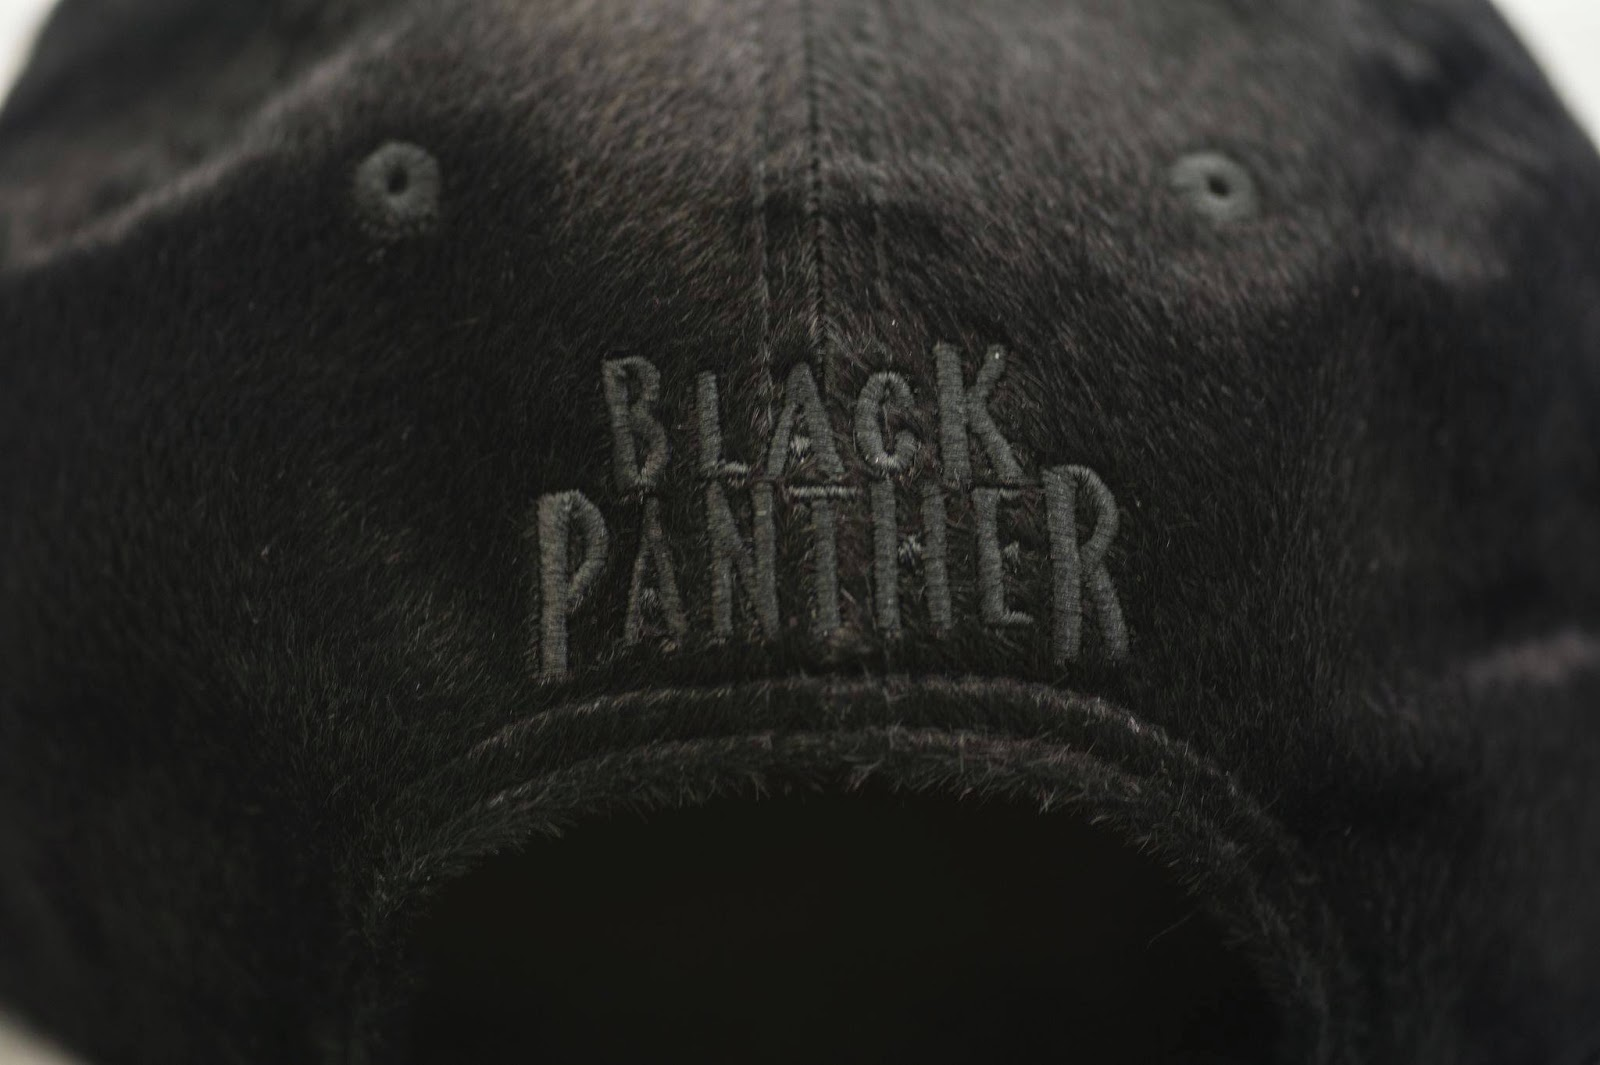 new arrival a7b0c 85fca ... clearance san diego comic con 2017 exclusive black panther snapback hats  by bait x new era